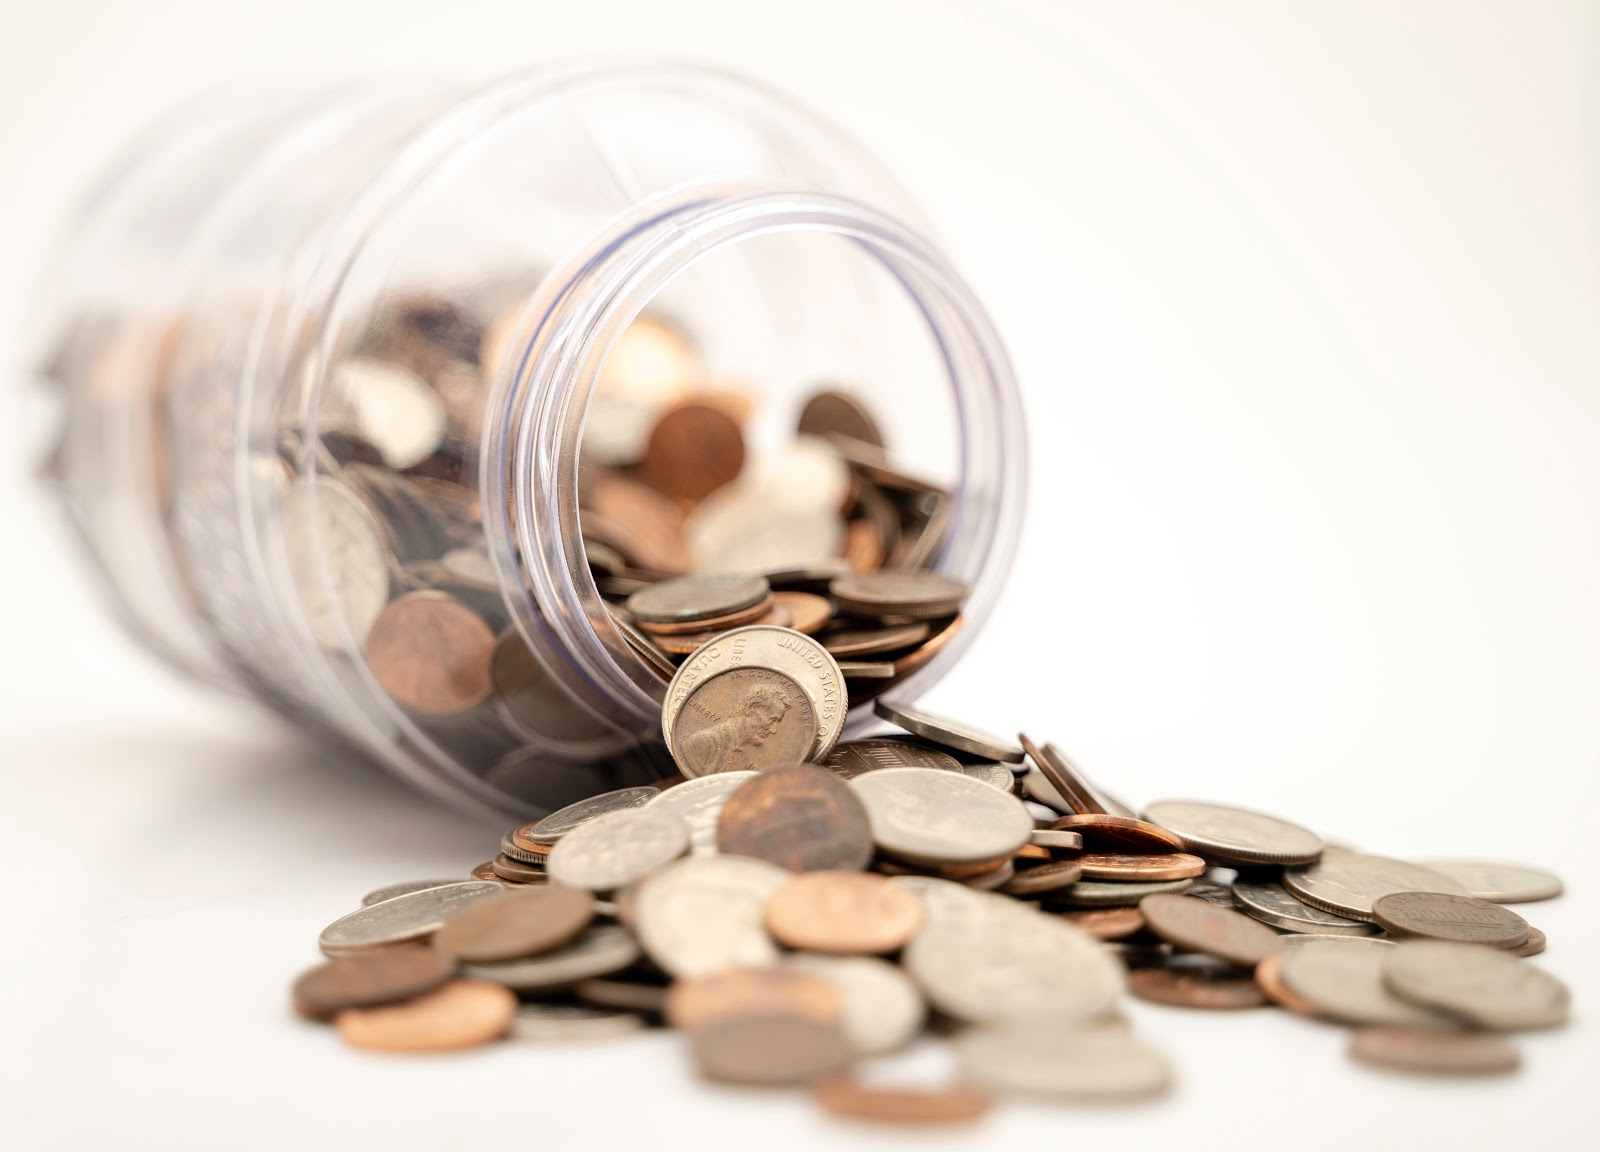 Coins spilling out of a jar.